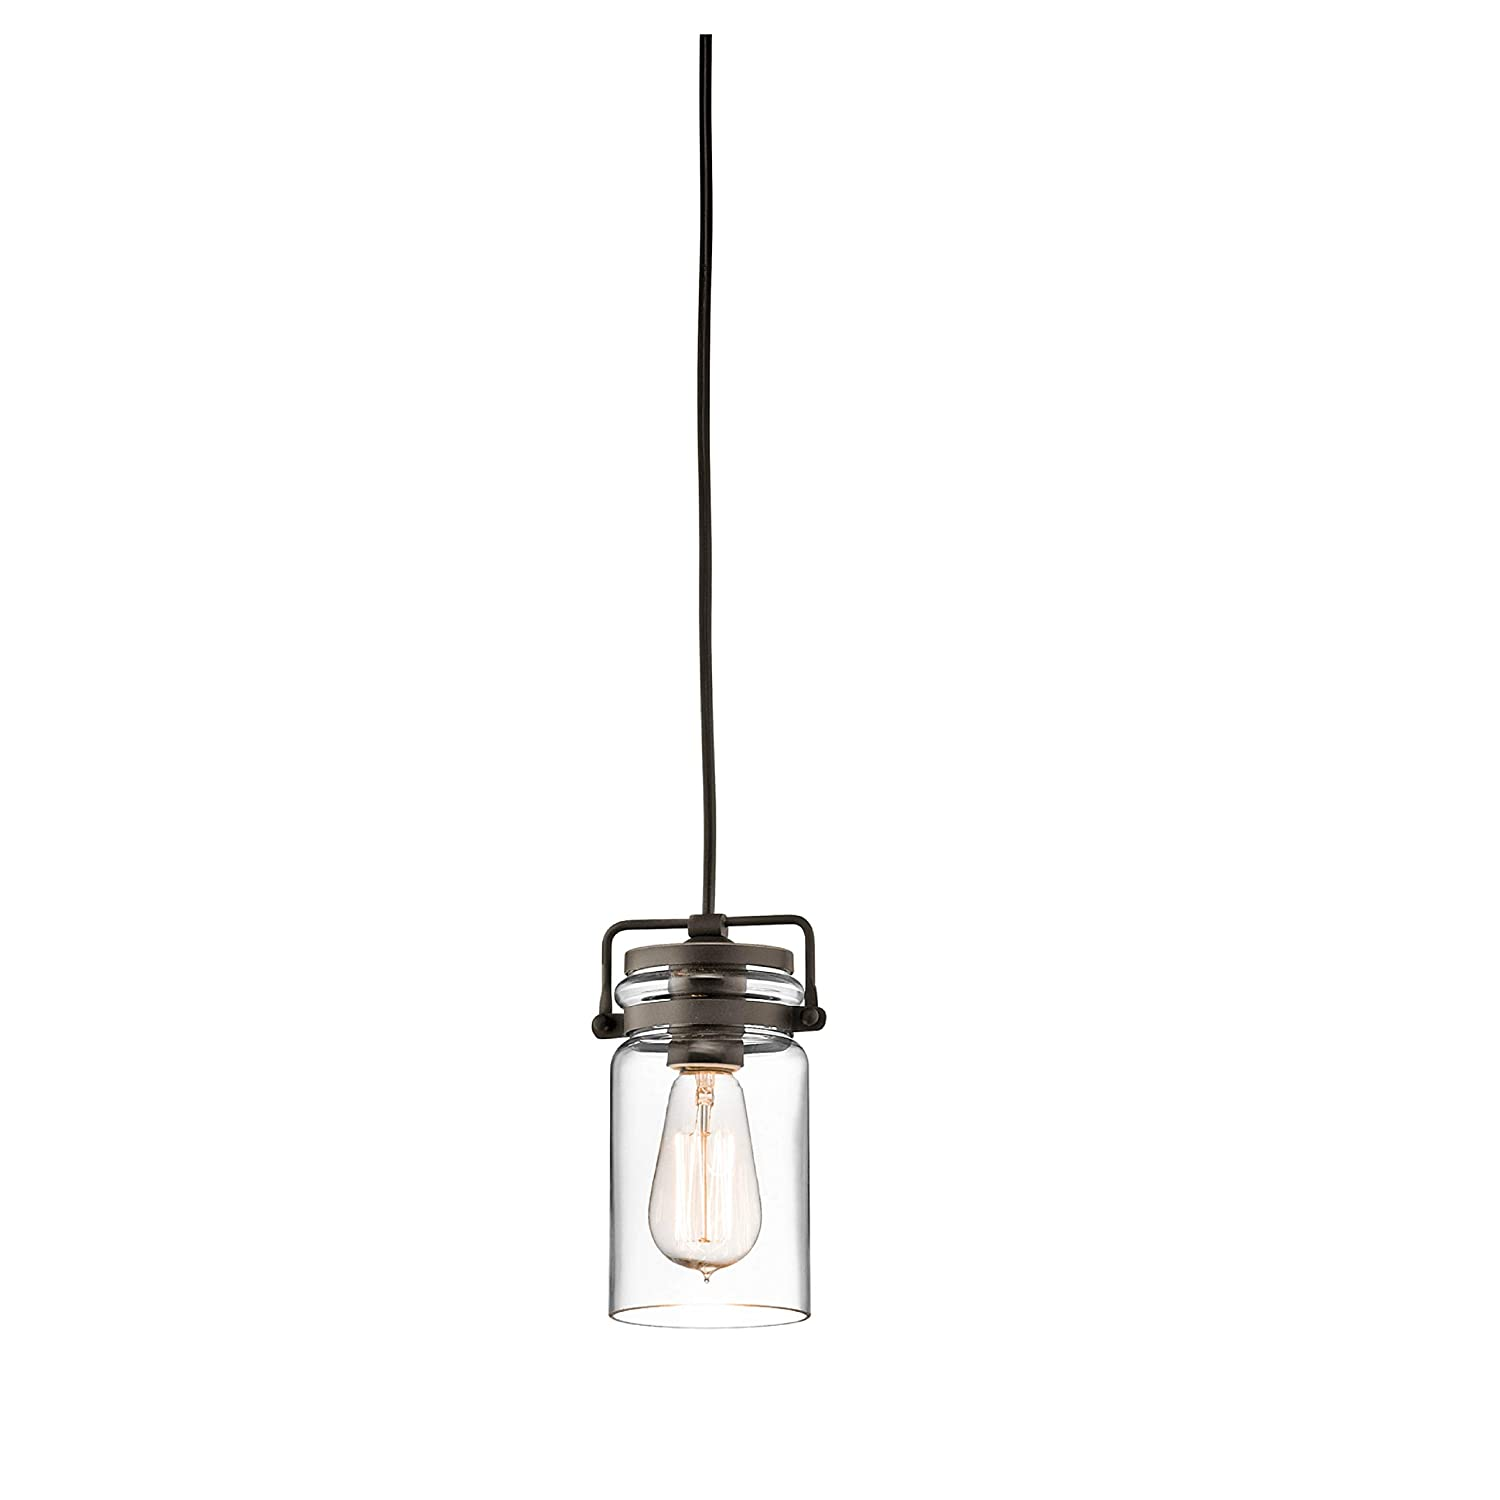 Kichler 42878OZ, Brinley Mini Cylinder Pendant, 1 Light, Olde Bronze